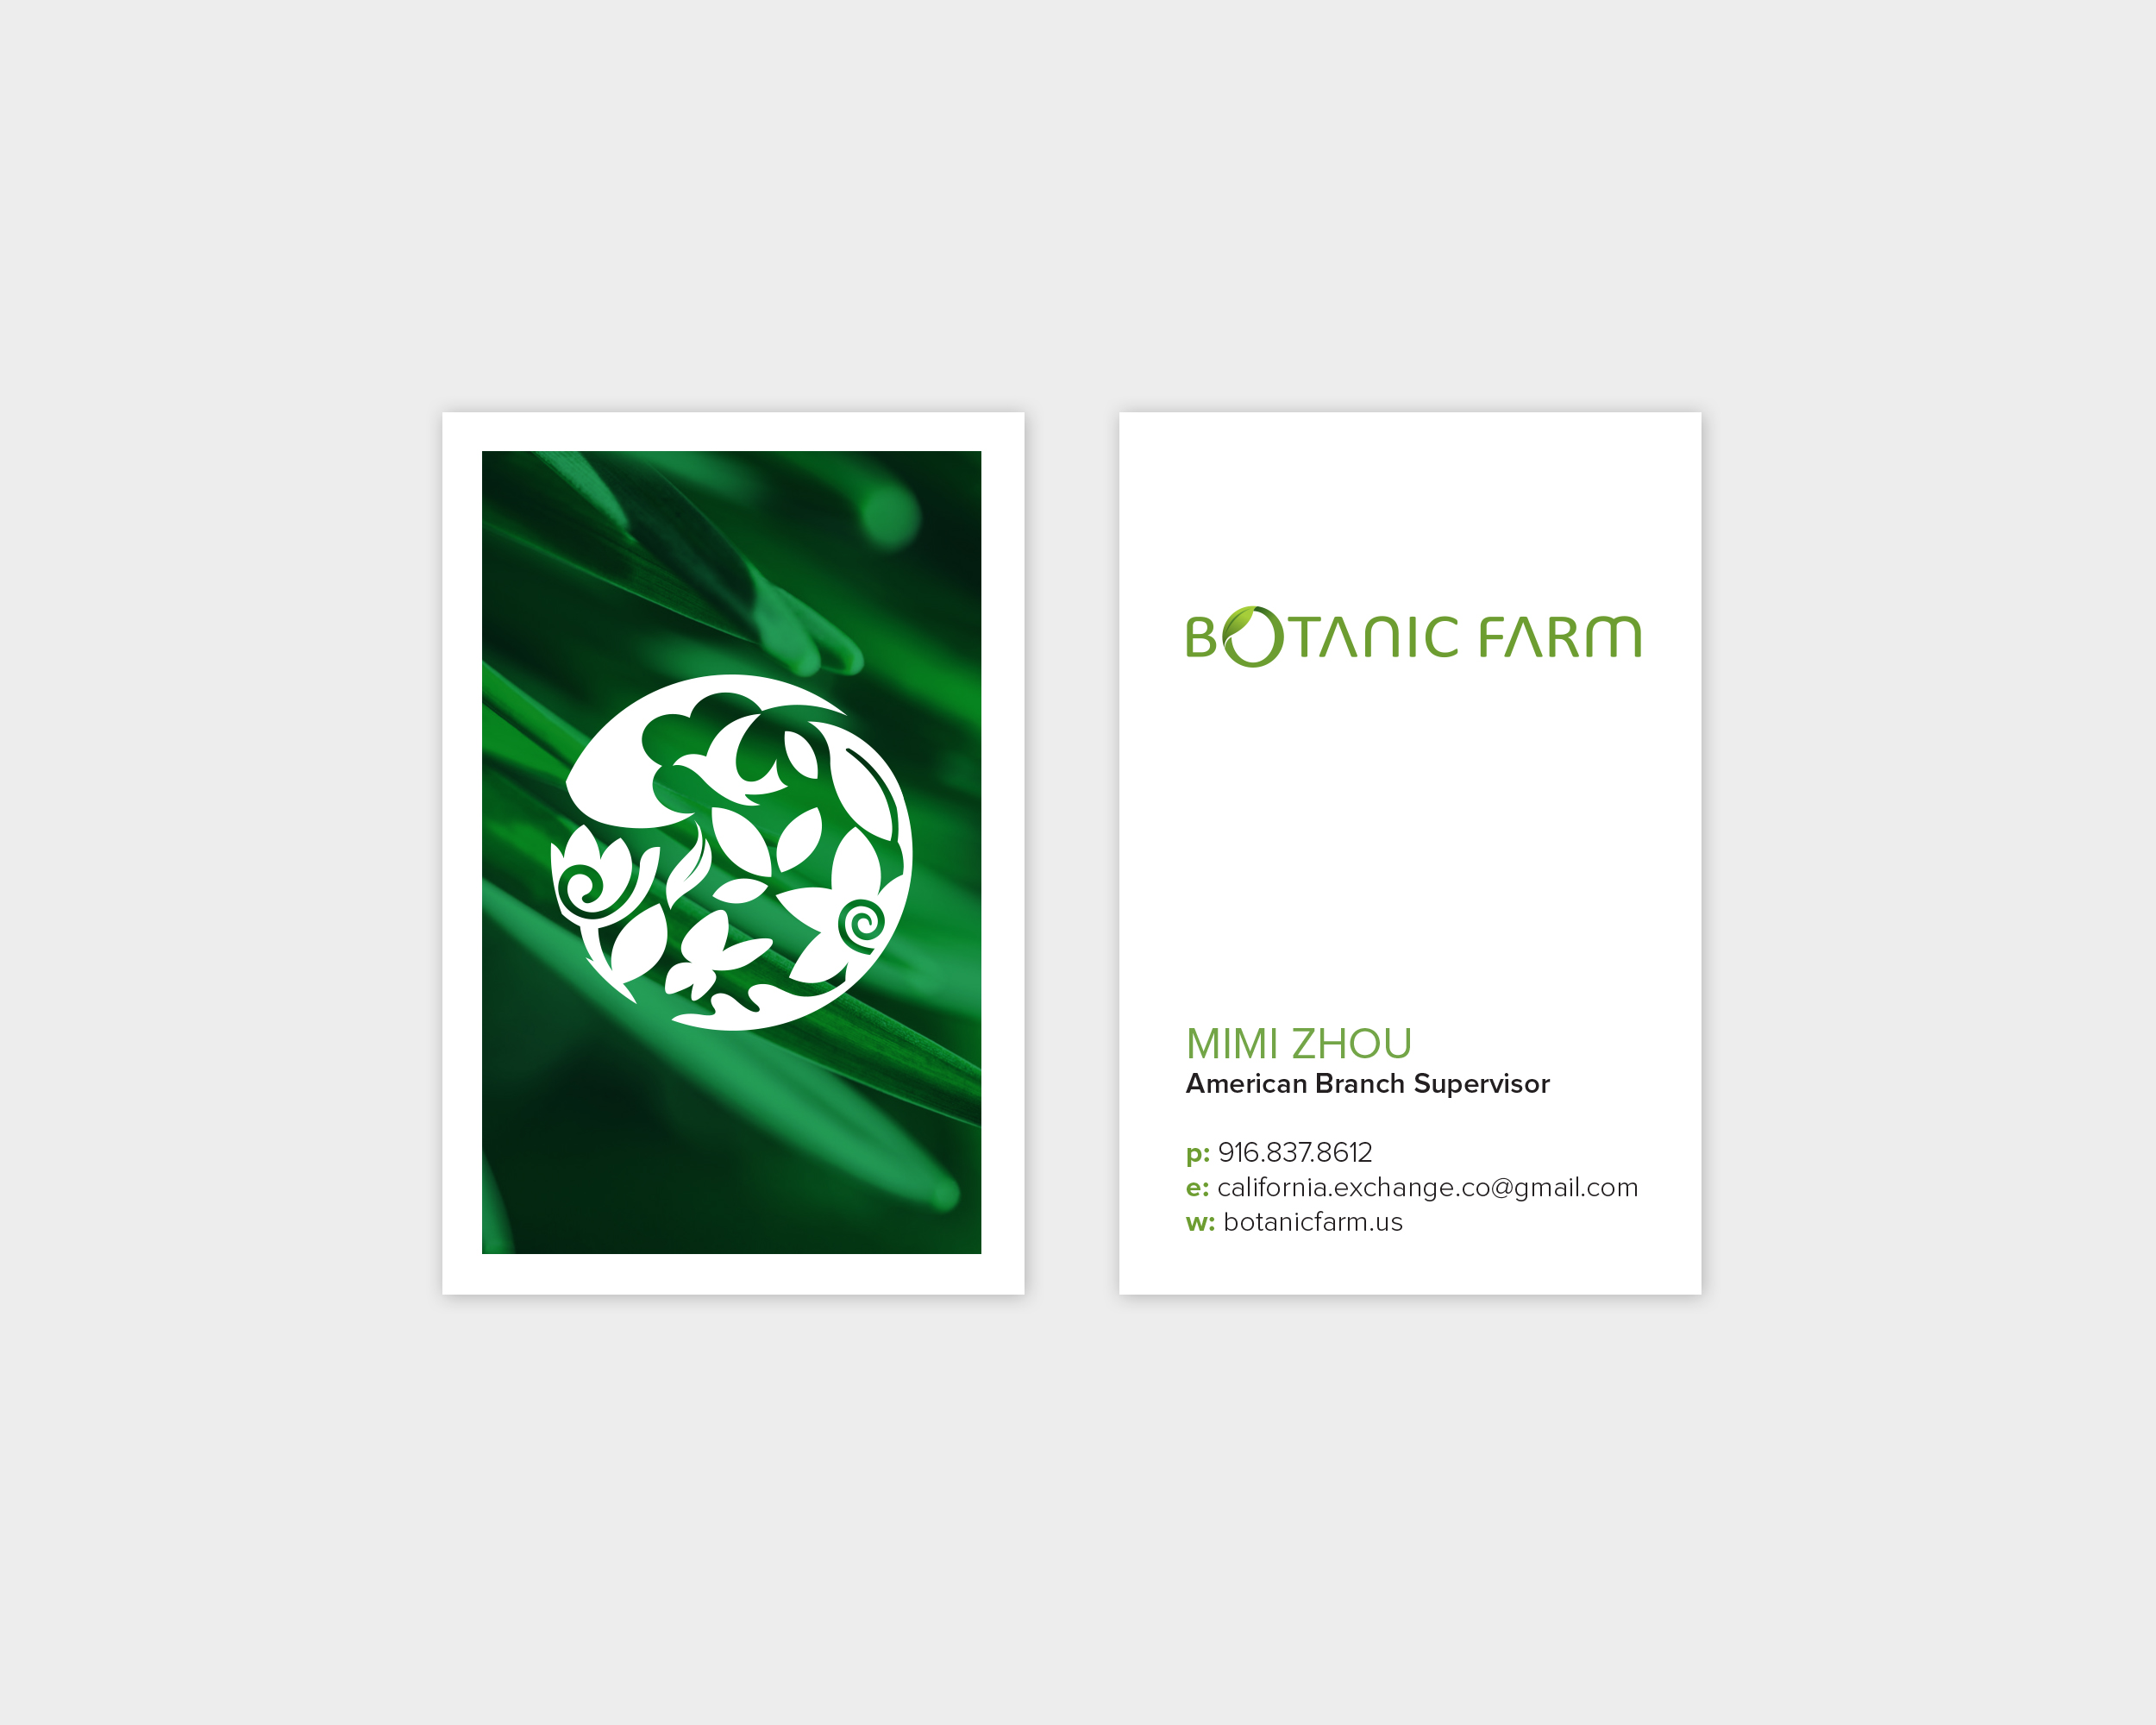 Botanic Farm Business Card Design